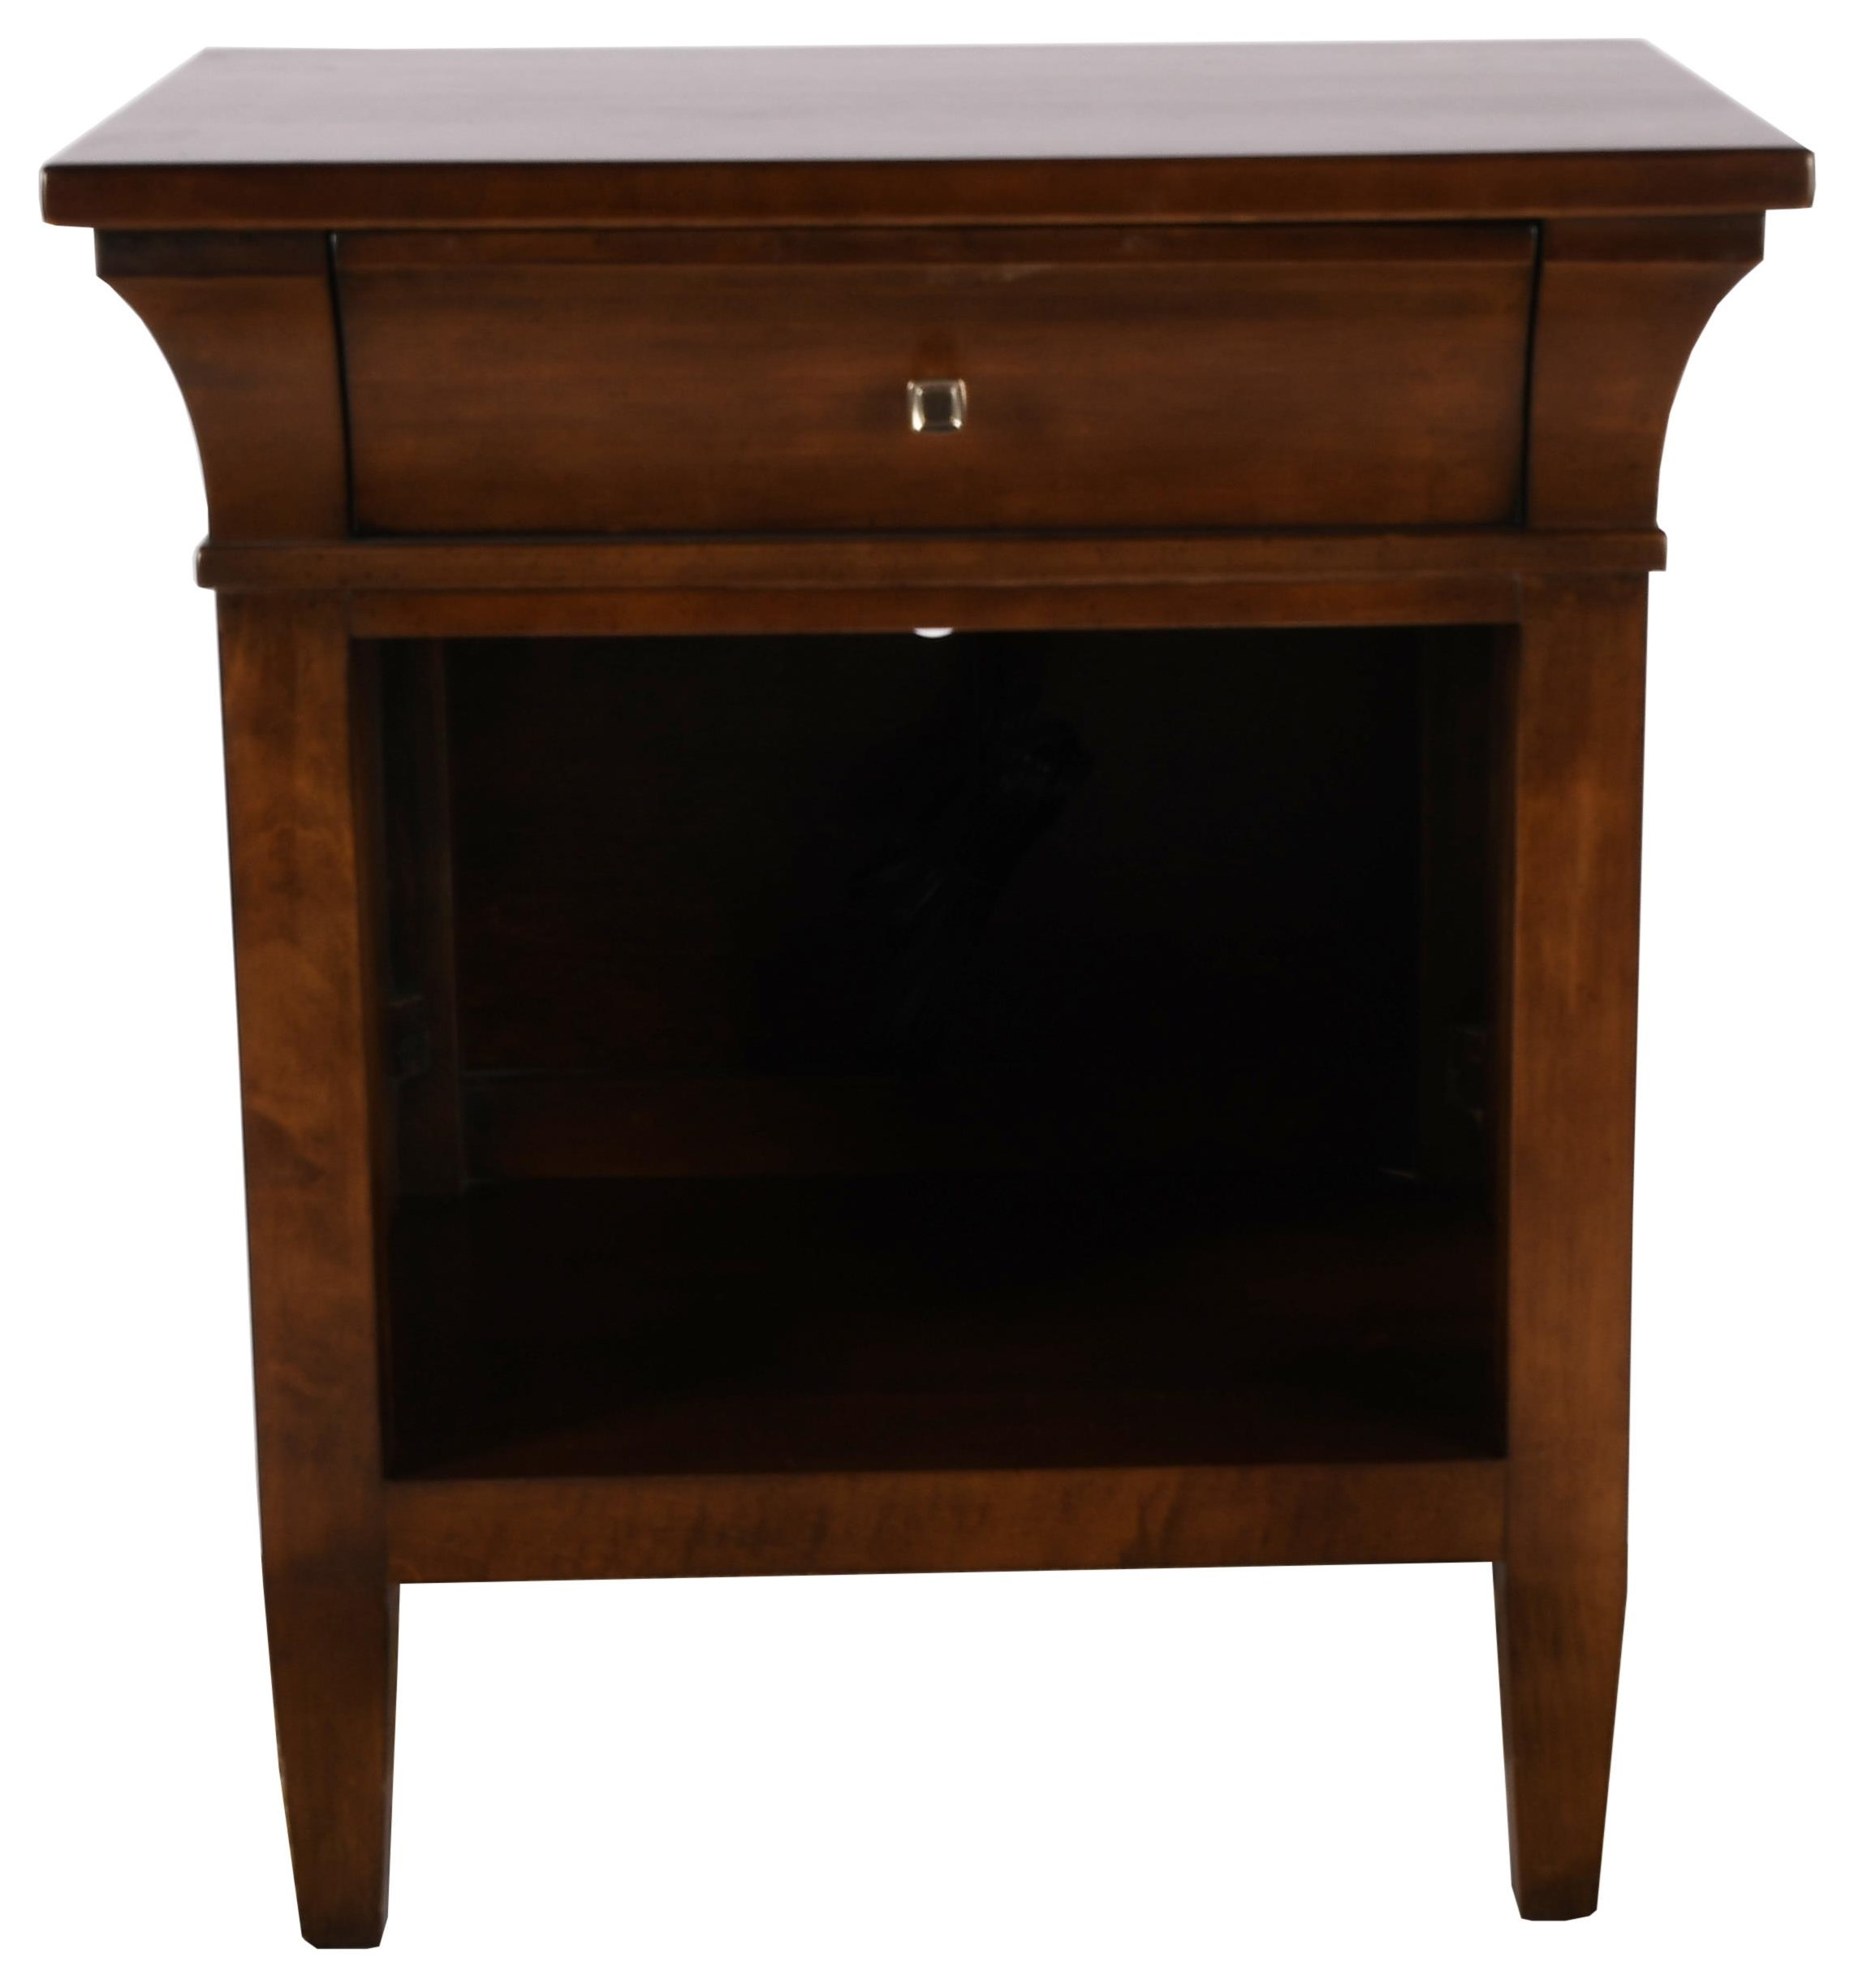 Prominence Nightstand by Durham at Bennett's Furniture and Mattresses